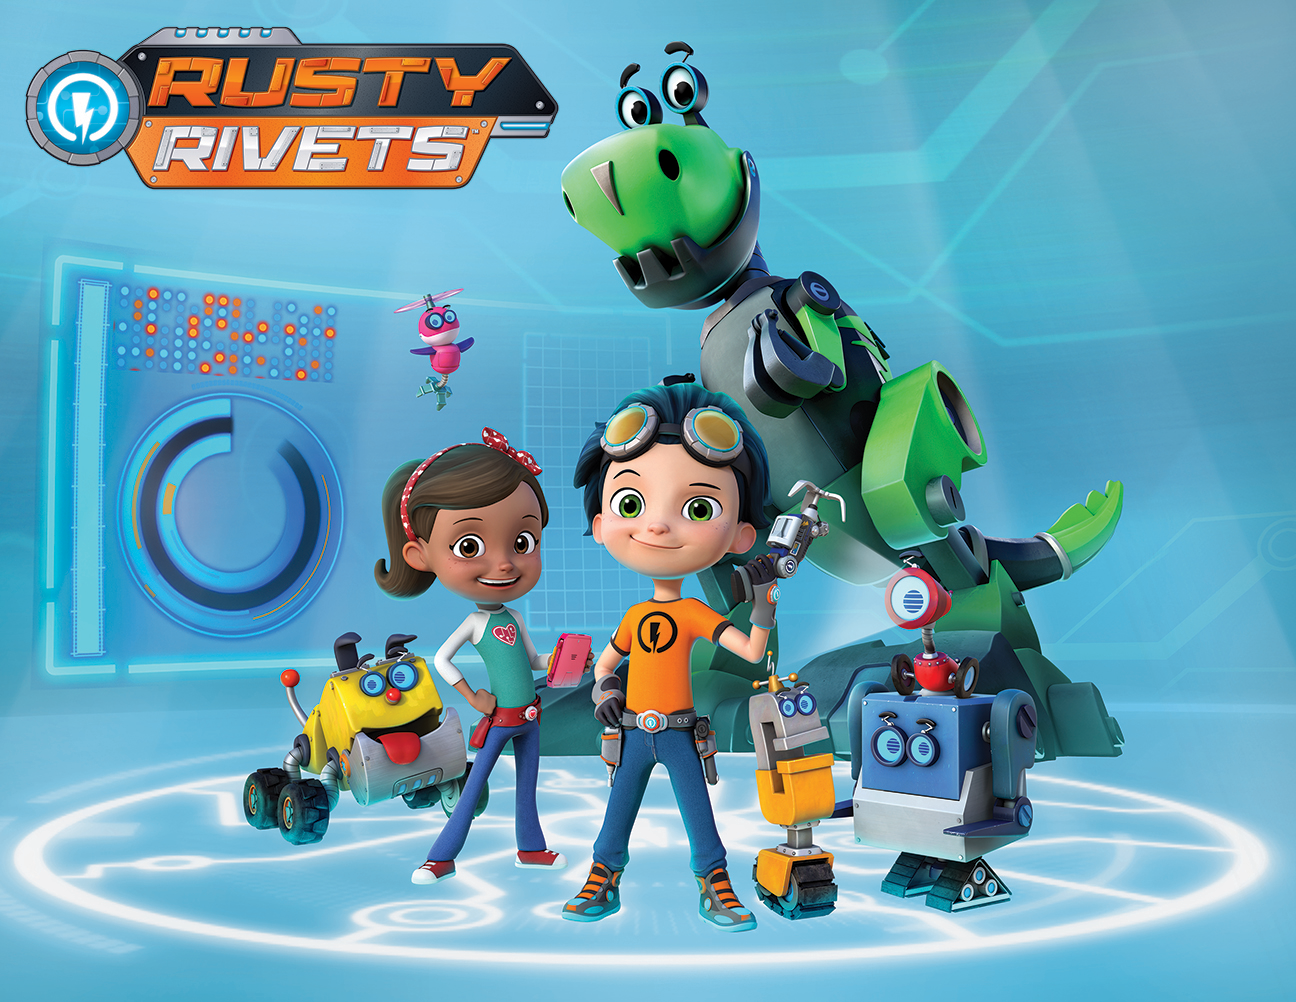 Image Rusty Rivets Nickelodeon Nick Jr Characters Spin